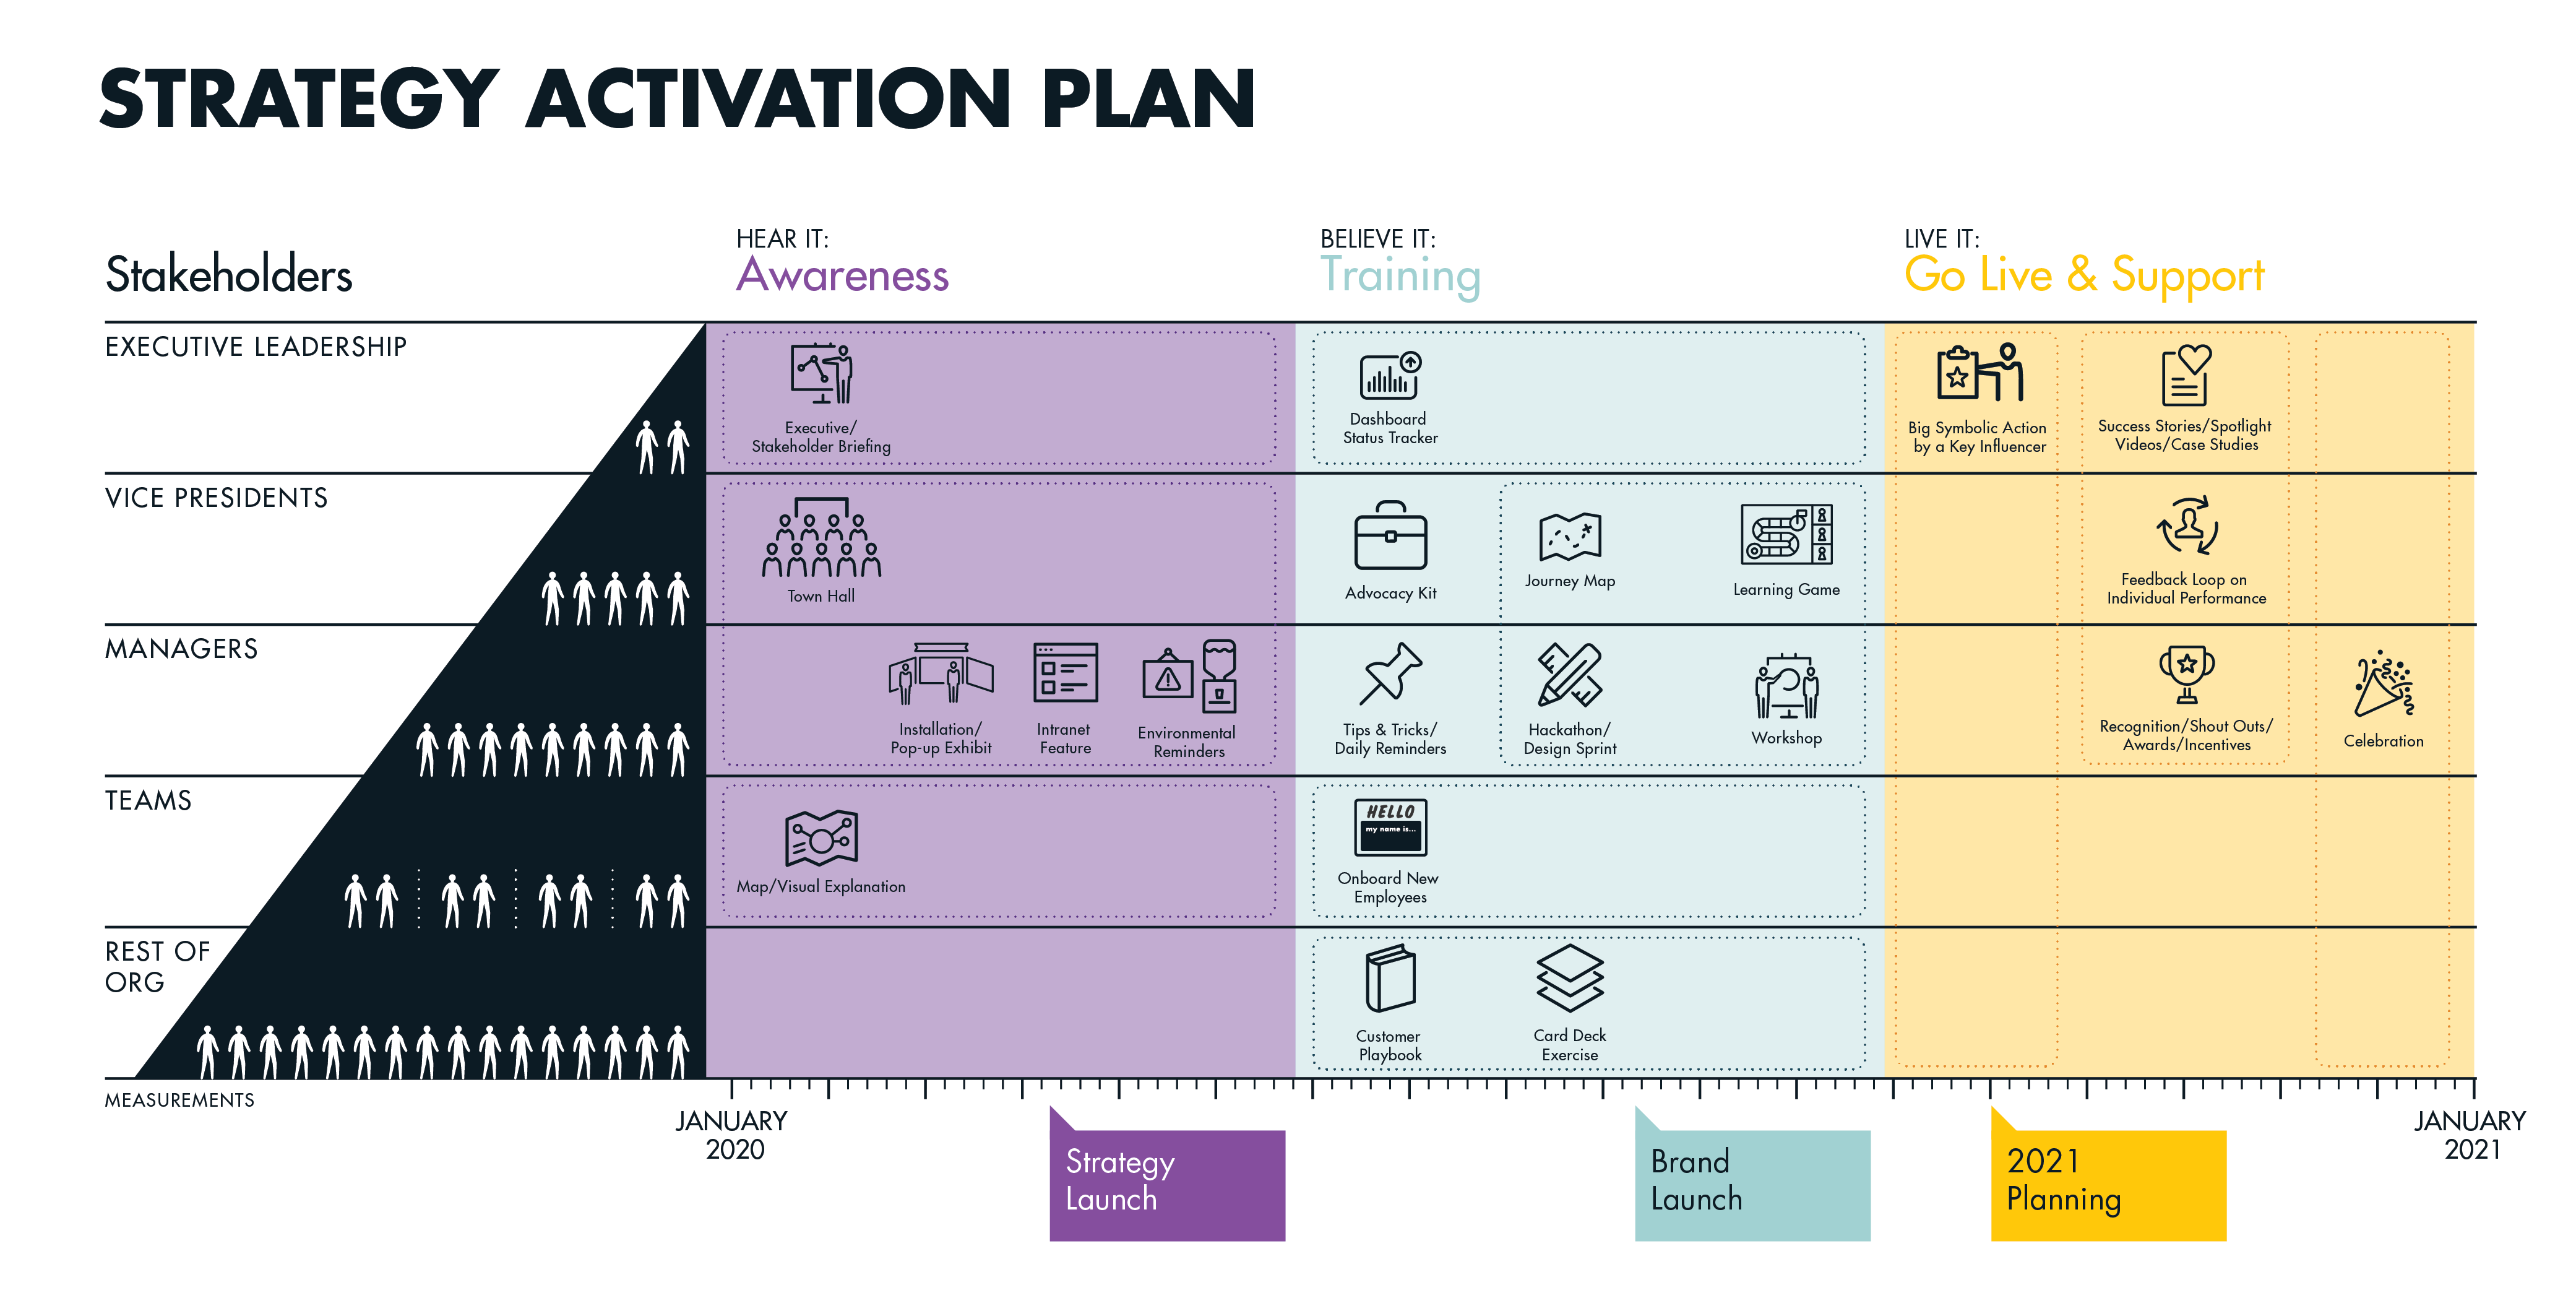 XPL_Blog_How to Design an Activation Plan_Activation Roadmap_Filled